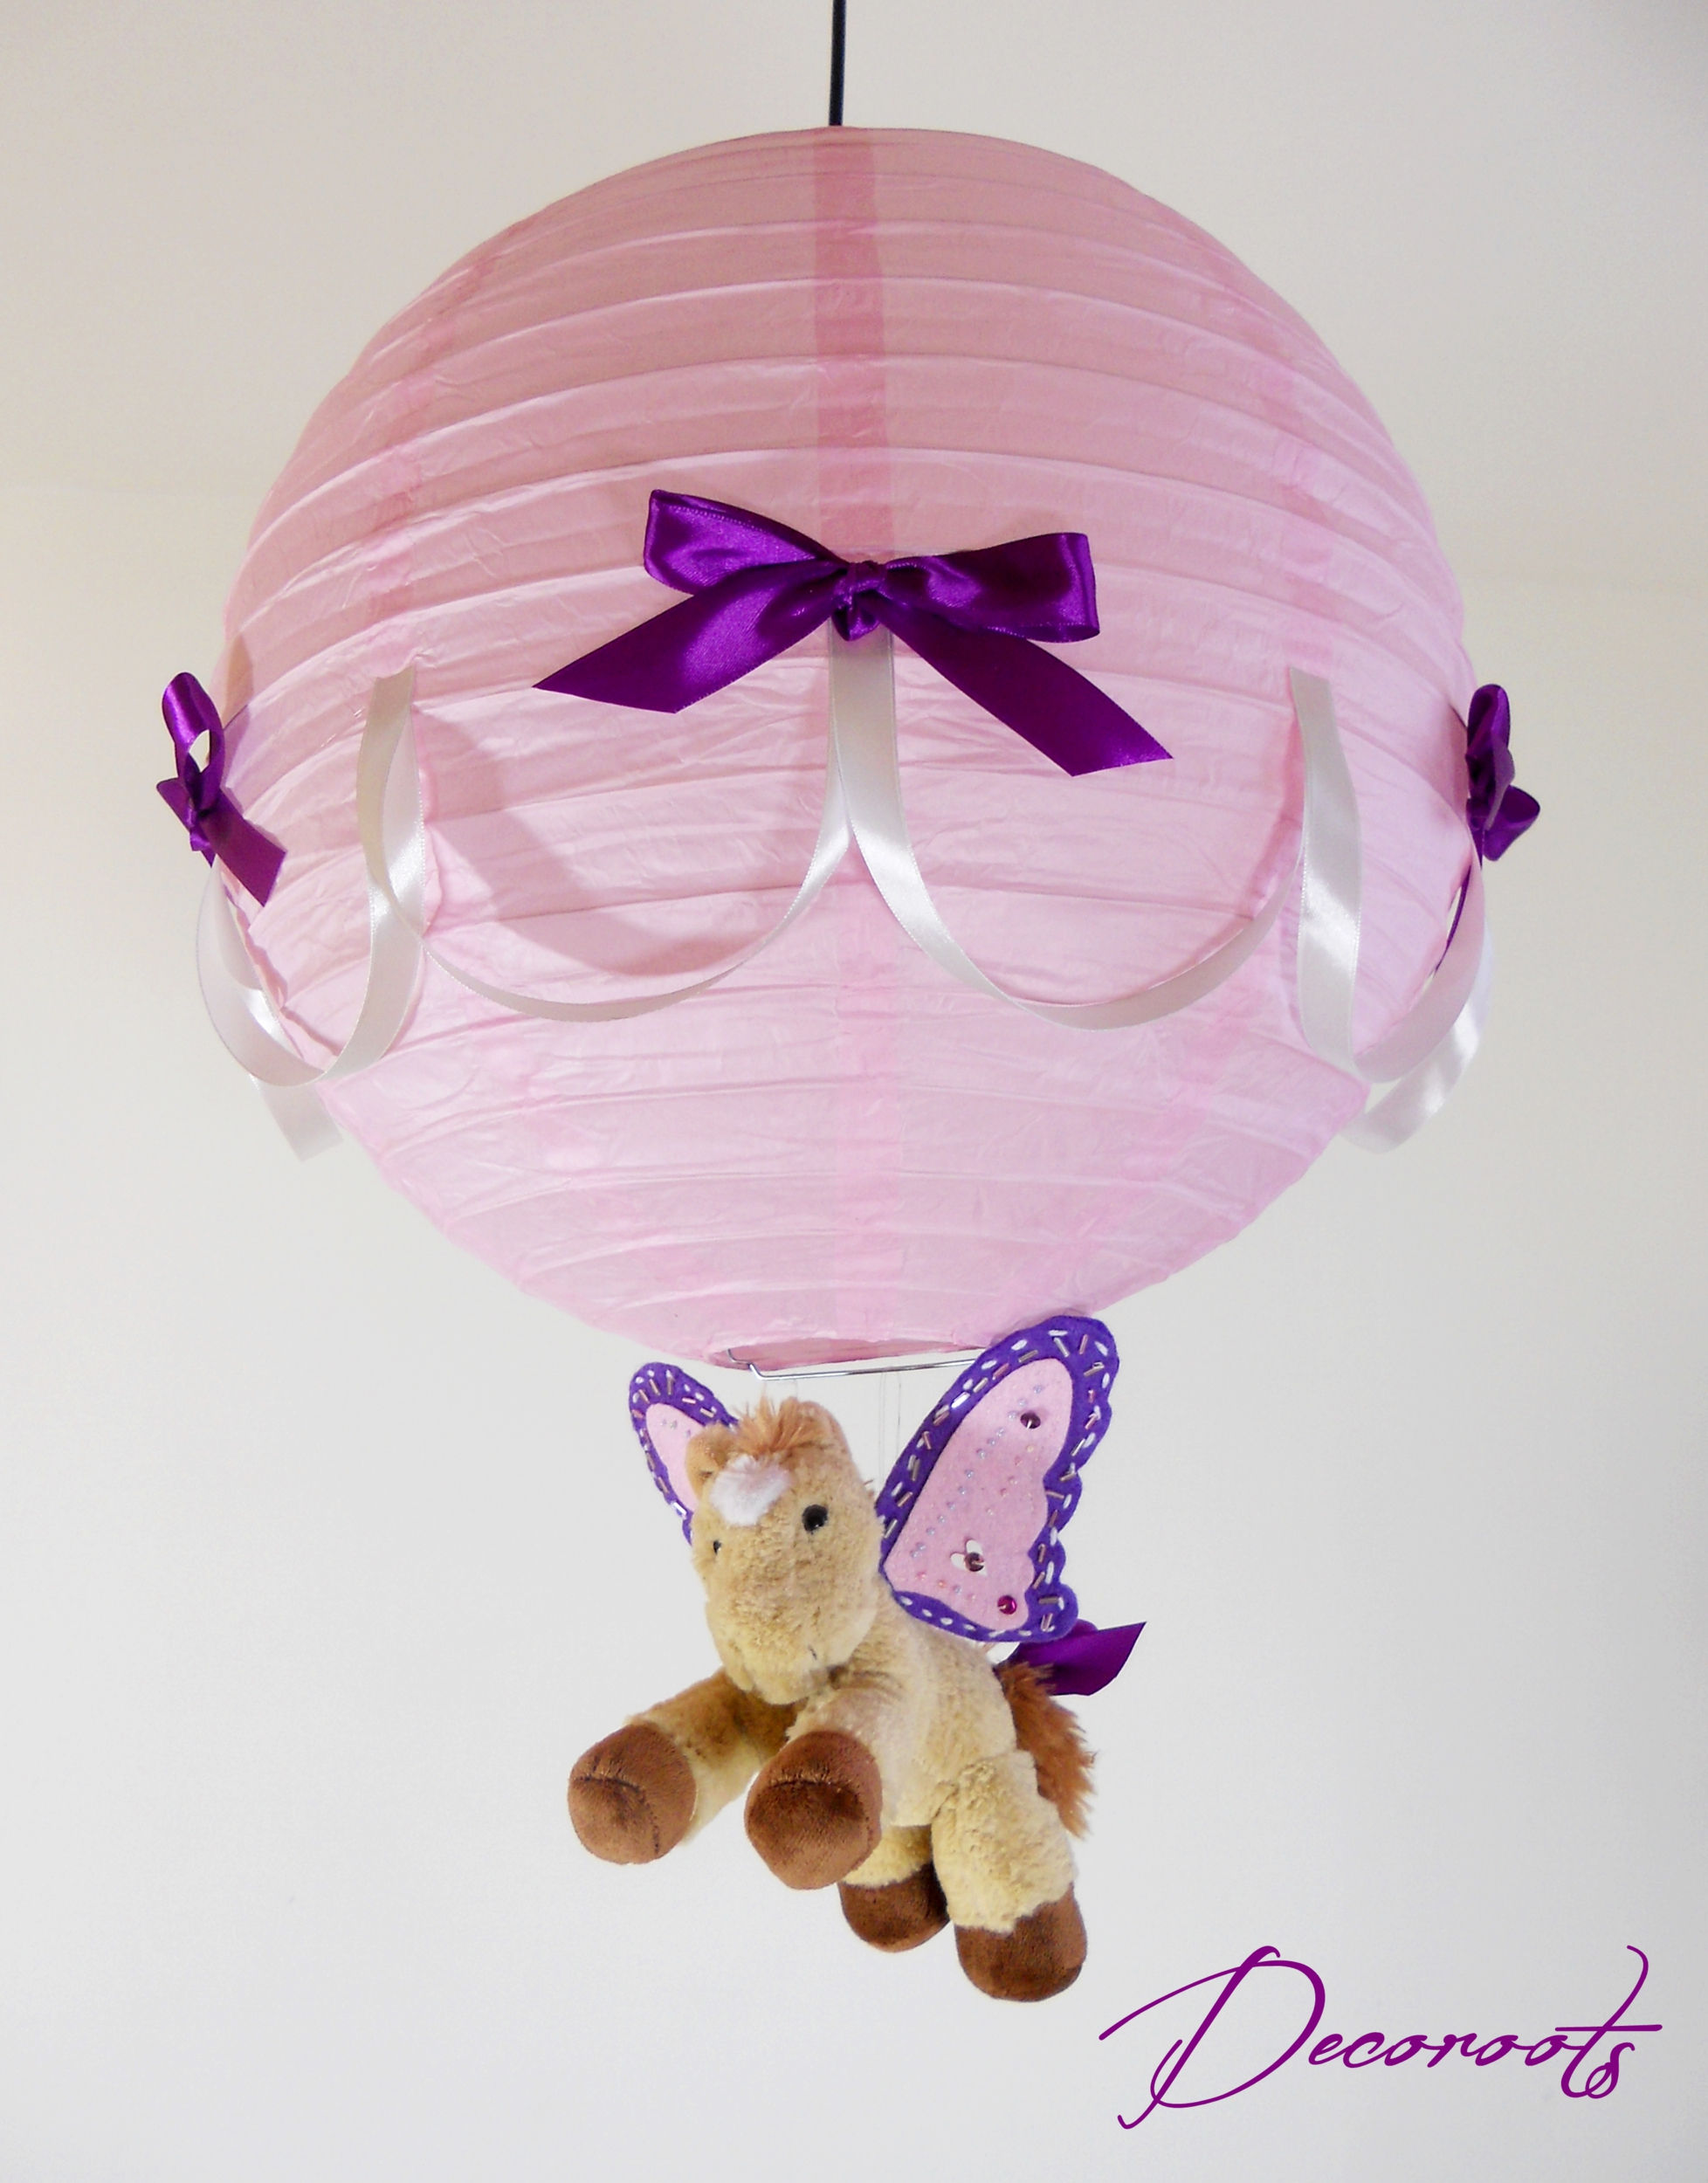 Suspension Bébé Garçon : Lampe suspension enfant bébé caramel le poney ailé rose